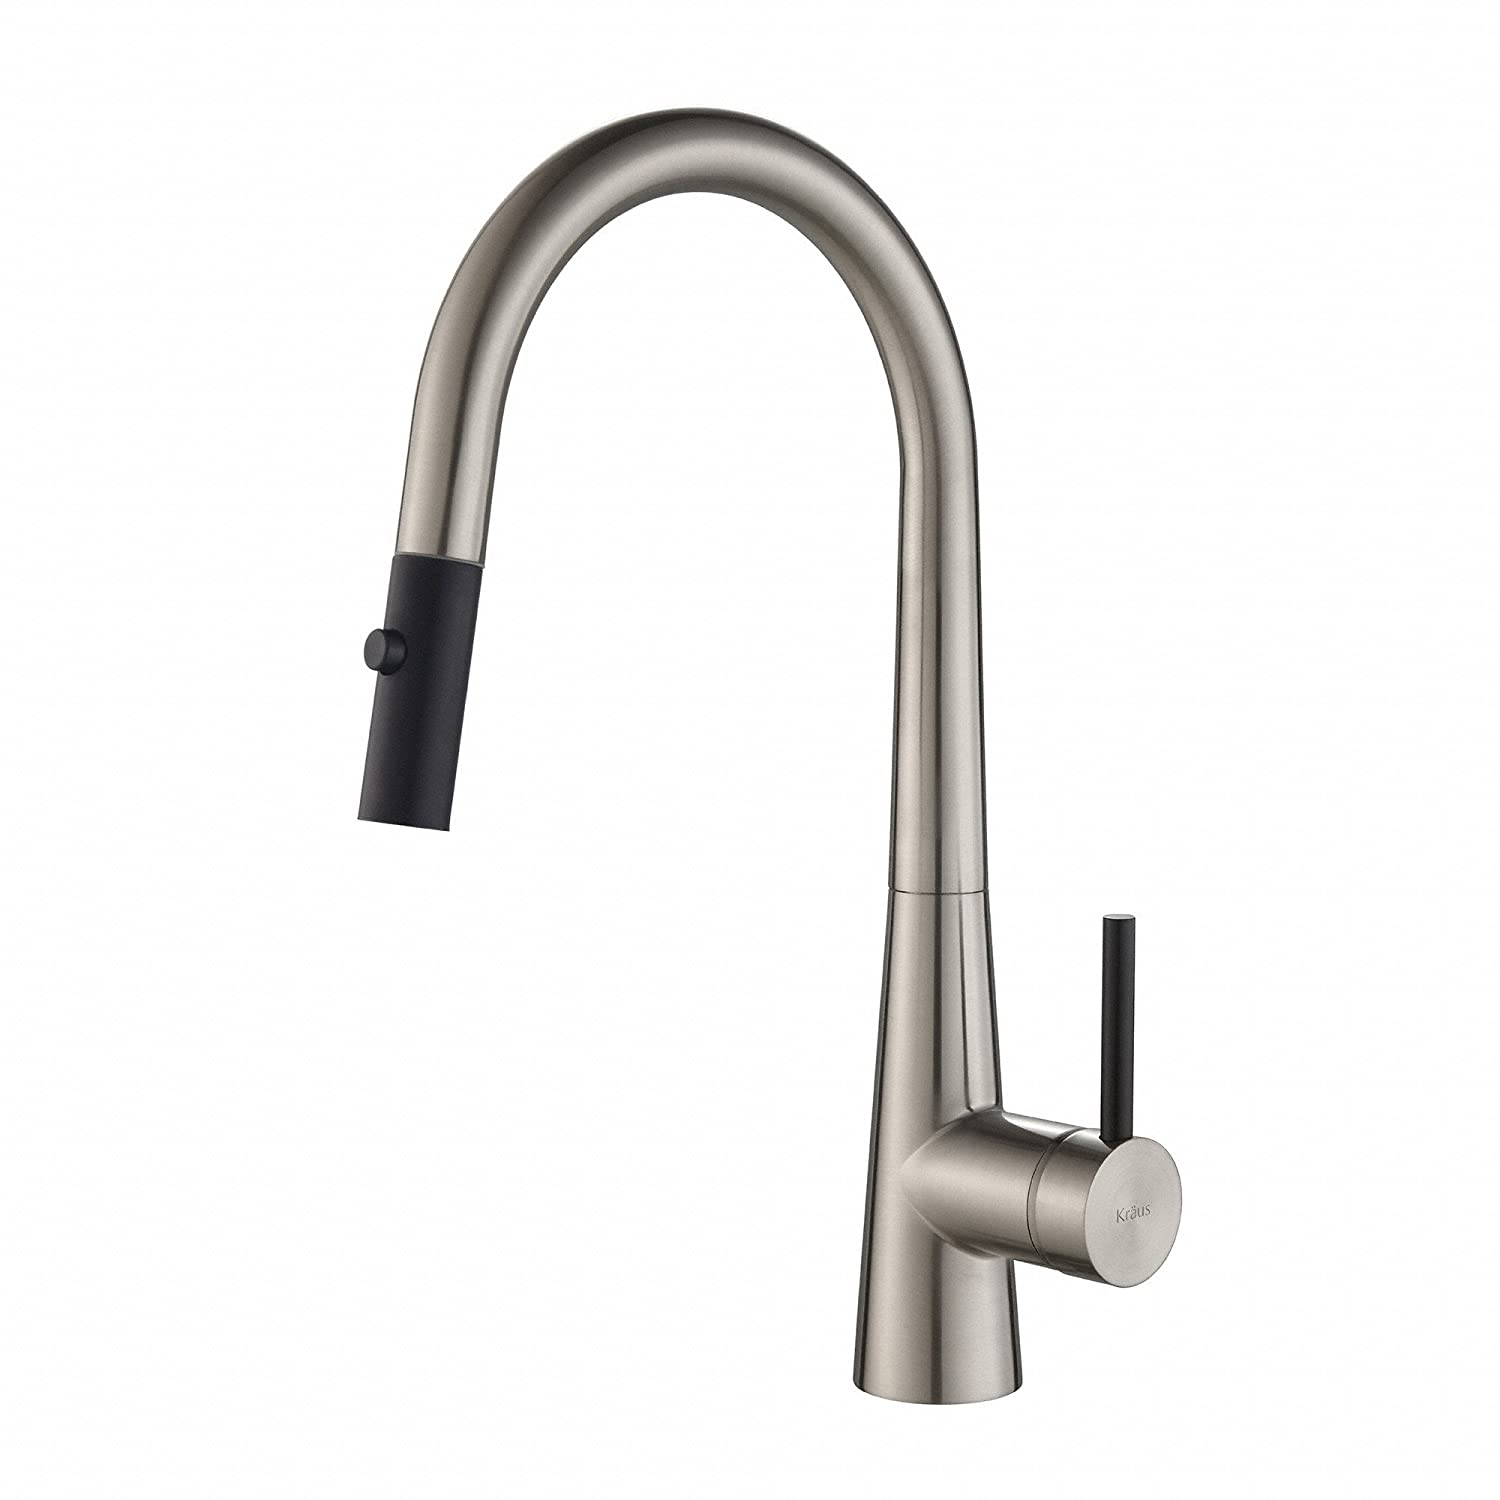 mounted spray fresh curitiba the size sink down of finish pull with stainless sprayer and full sinks faucets choosing beautiful right faucet deck gold steel kitchen